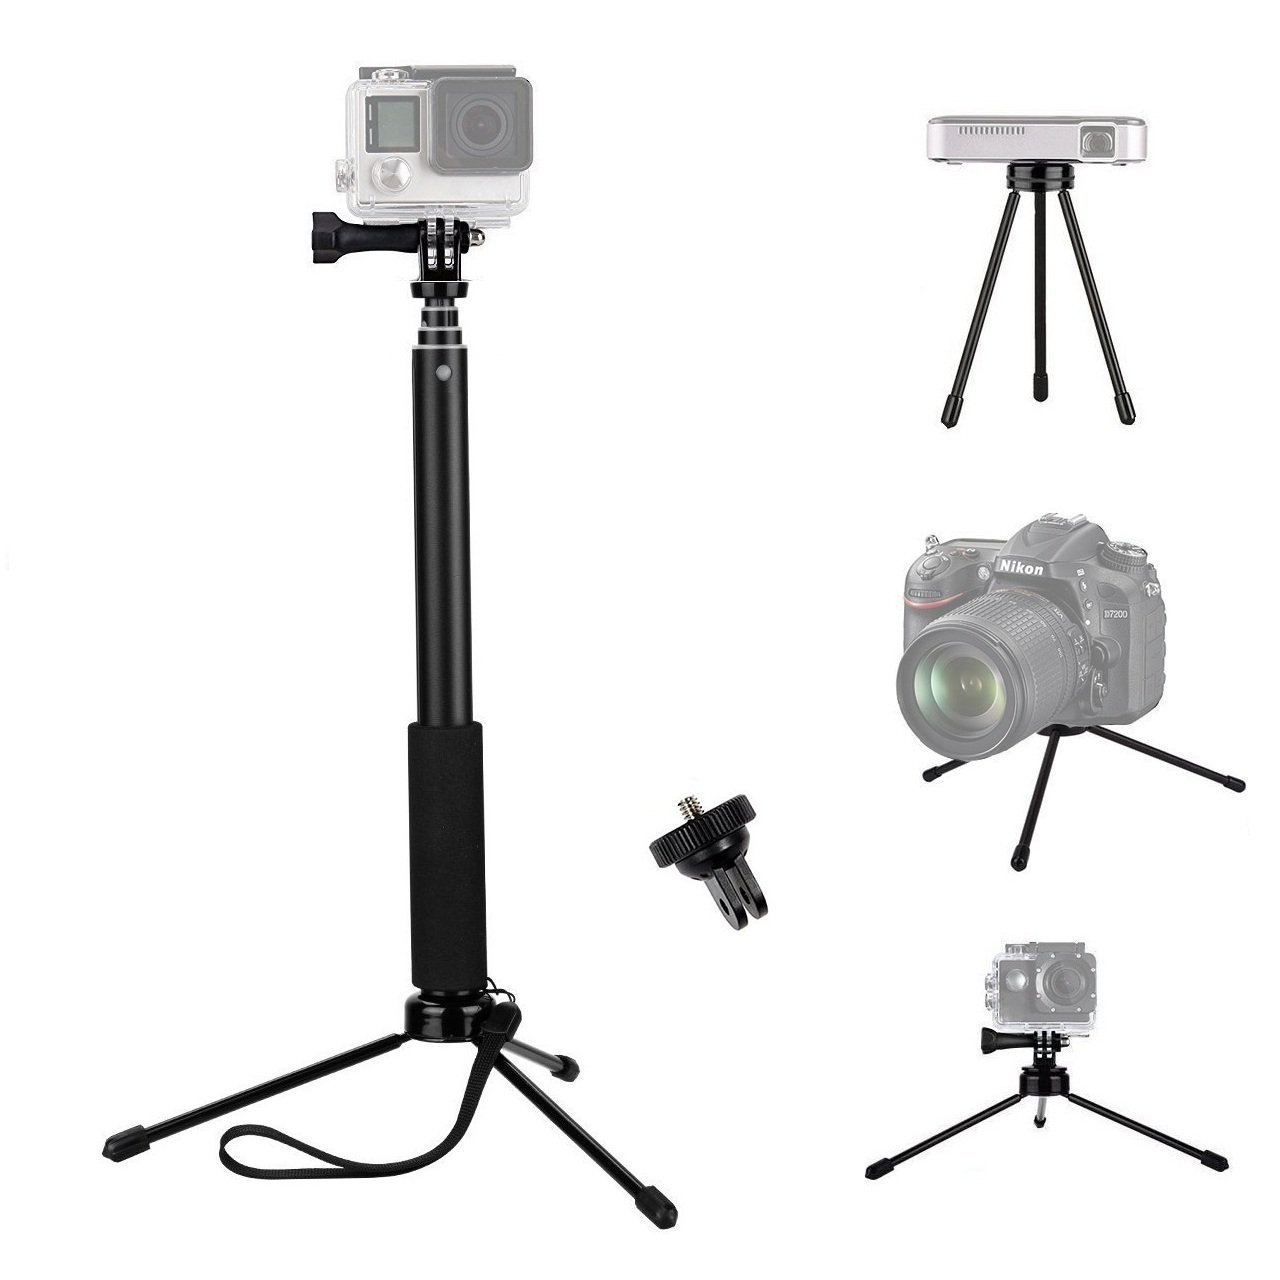 VVHOOY 37 inch Extendable Selfie Stick with Universal Mini Tripod Stand and Adapter for Gopro Hero 6/5/AKASO EK7000/Brave 4/APEMAN/Pictek/Bopower/Vtin/ODRVM Sports Action Camera and More